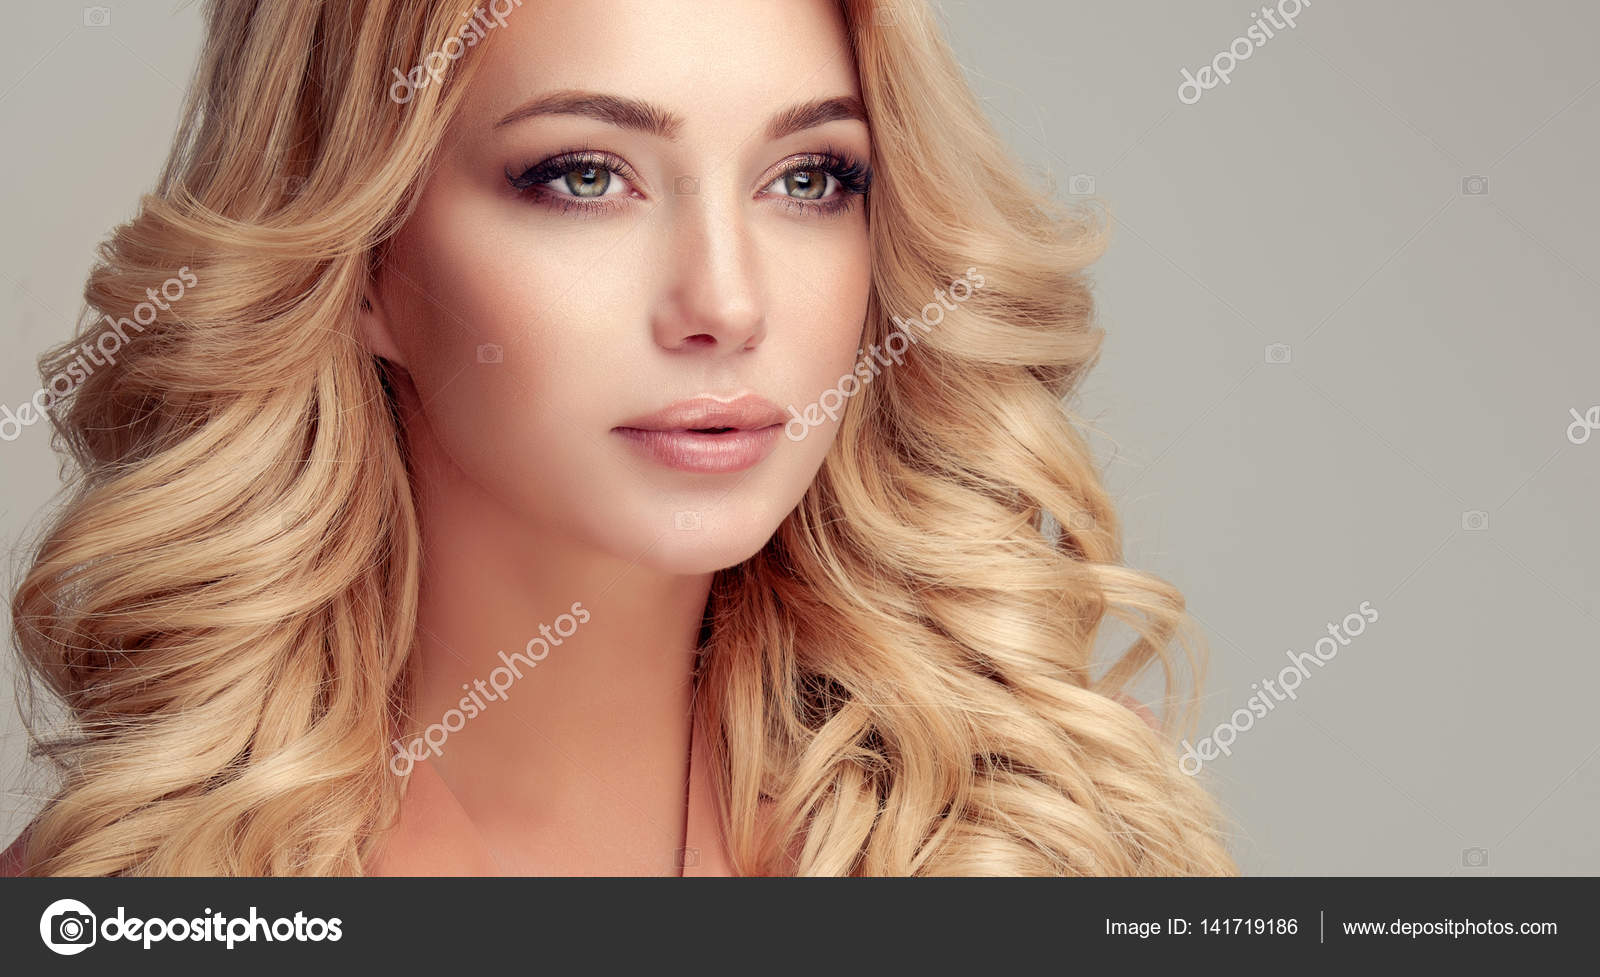 [Image: depositphotos_141719186-stock-photo-beau...r-girl.jpg]